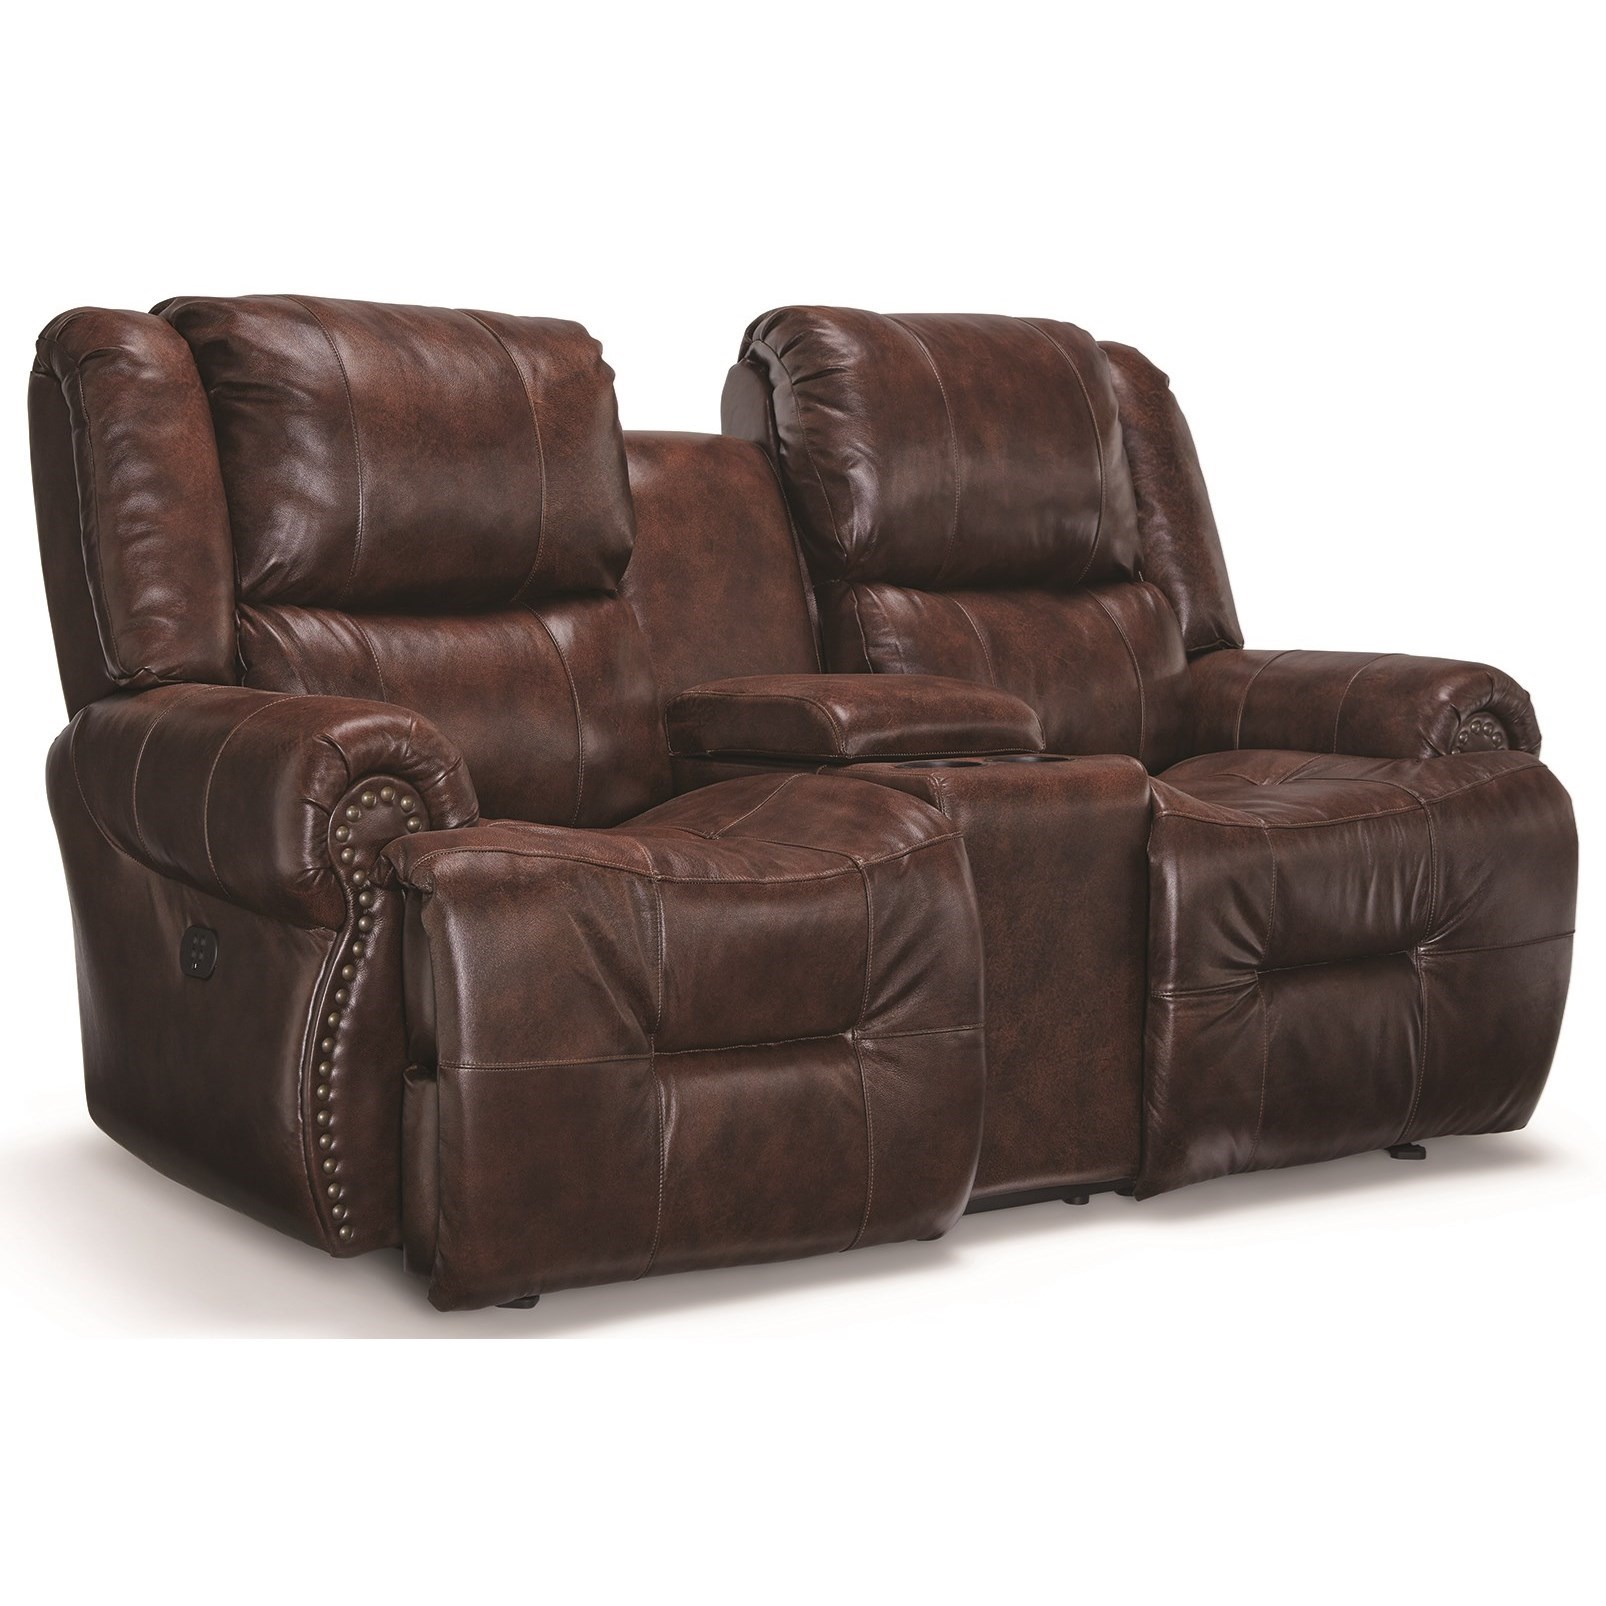 Genet Reclining Space Saver Console Loveseat by Best Home Furnishings at Baer's Furniture